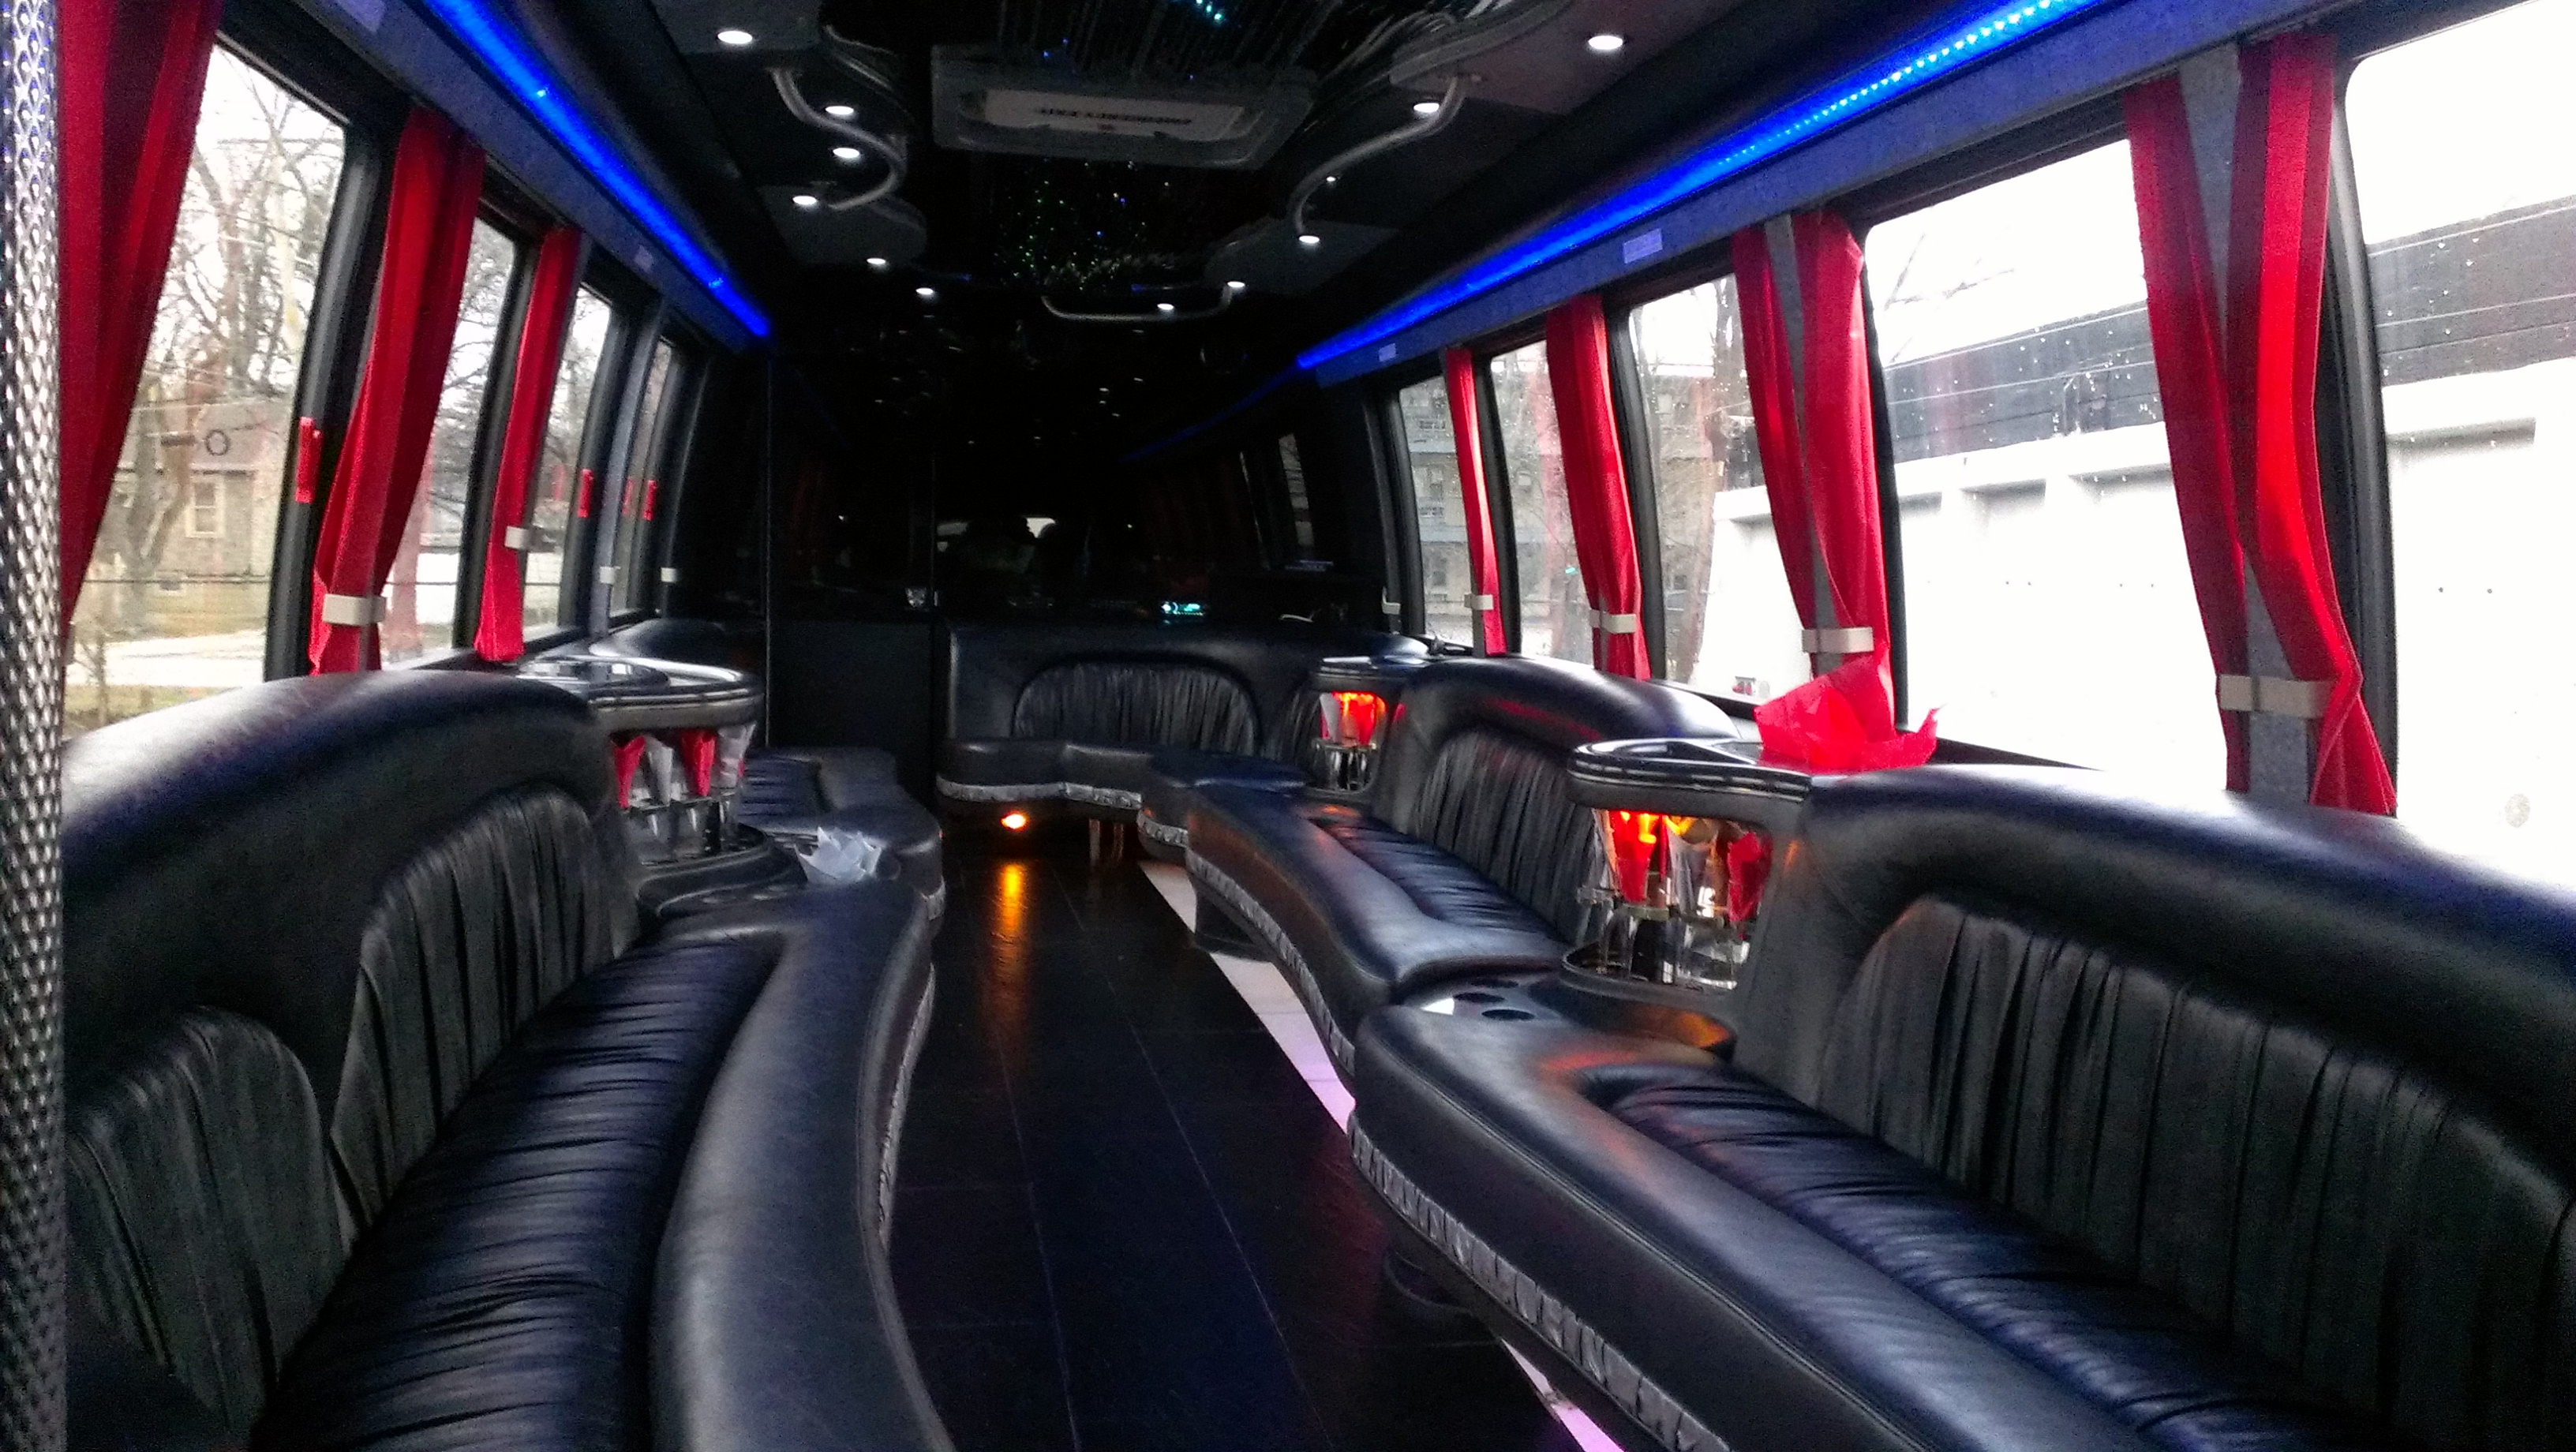 Rent A Nj Party Bus Time To Party Vip Style 30 To 40